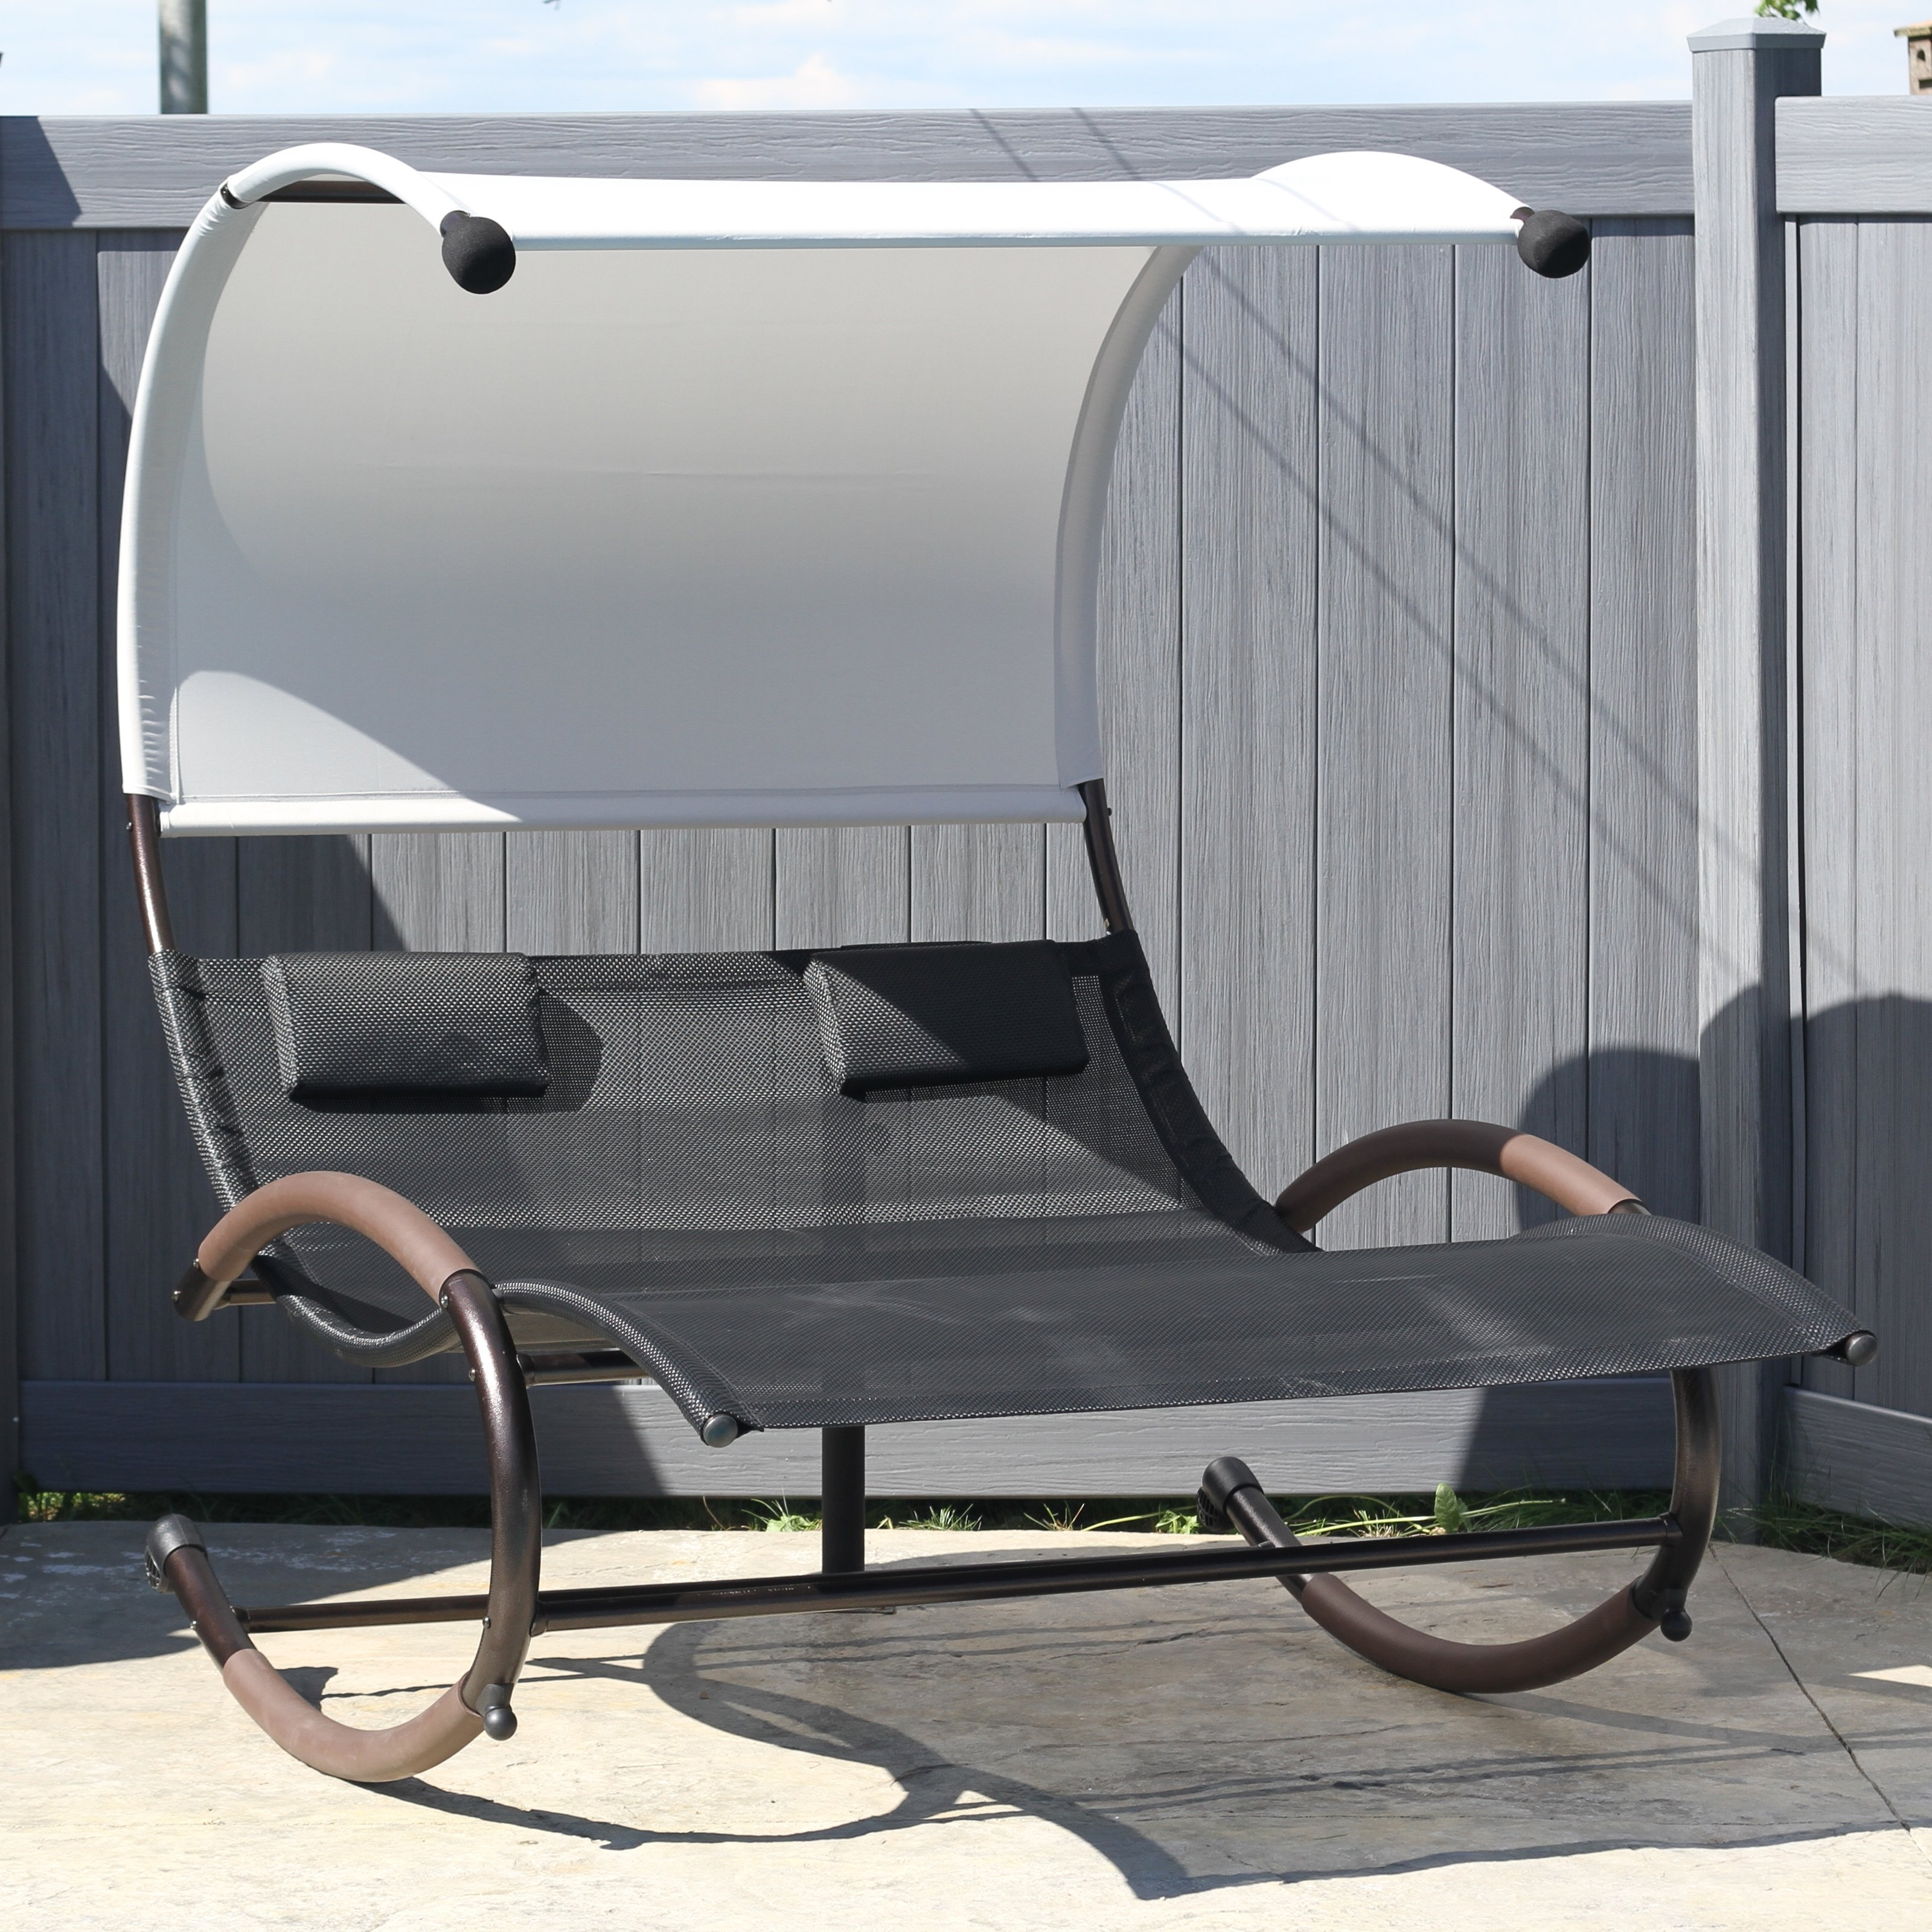 Hayneedle Pertaining To Most Up To Date Chaise Lounge Chair With Canopy (View 4 of 15)